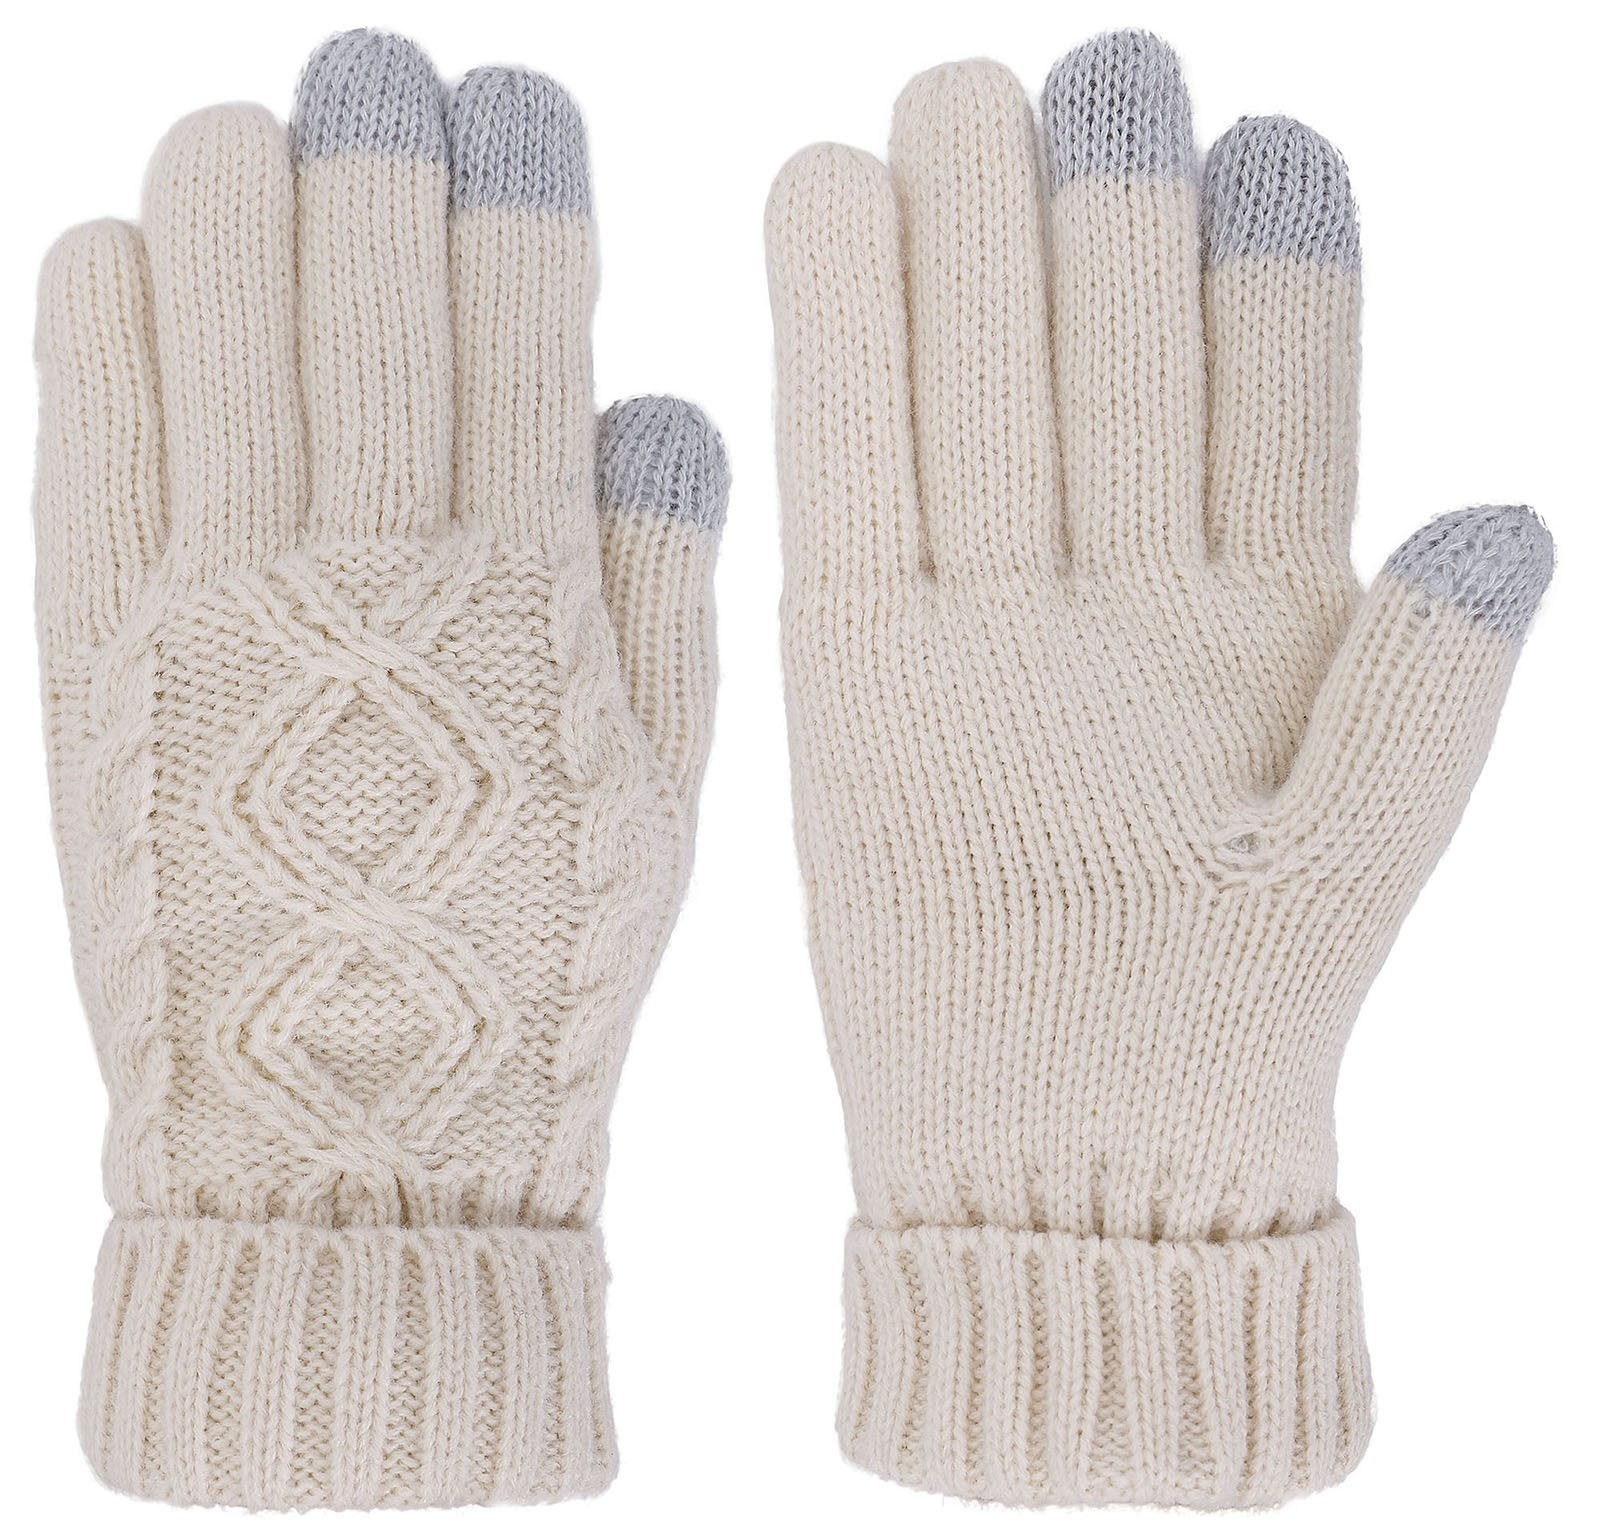 Women's Cable Knit 3 Finger Touchscreen Sensitive Winter Mitten Gloves,Vanilla